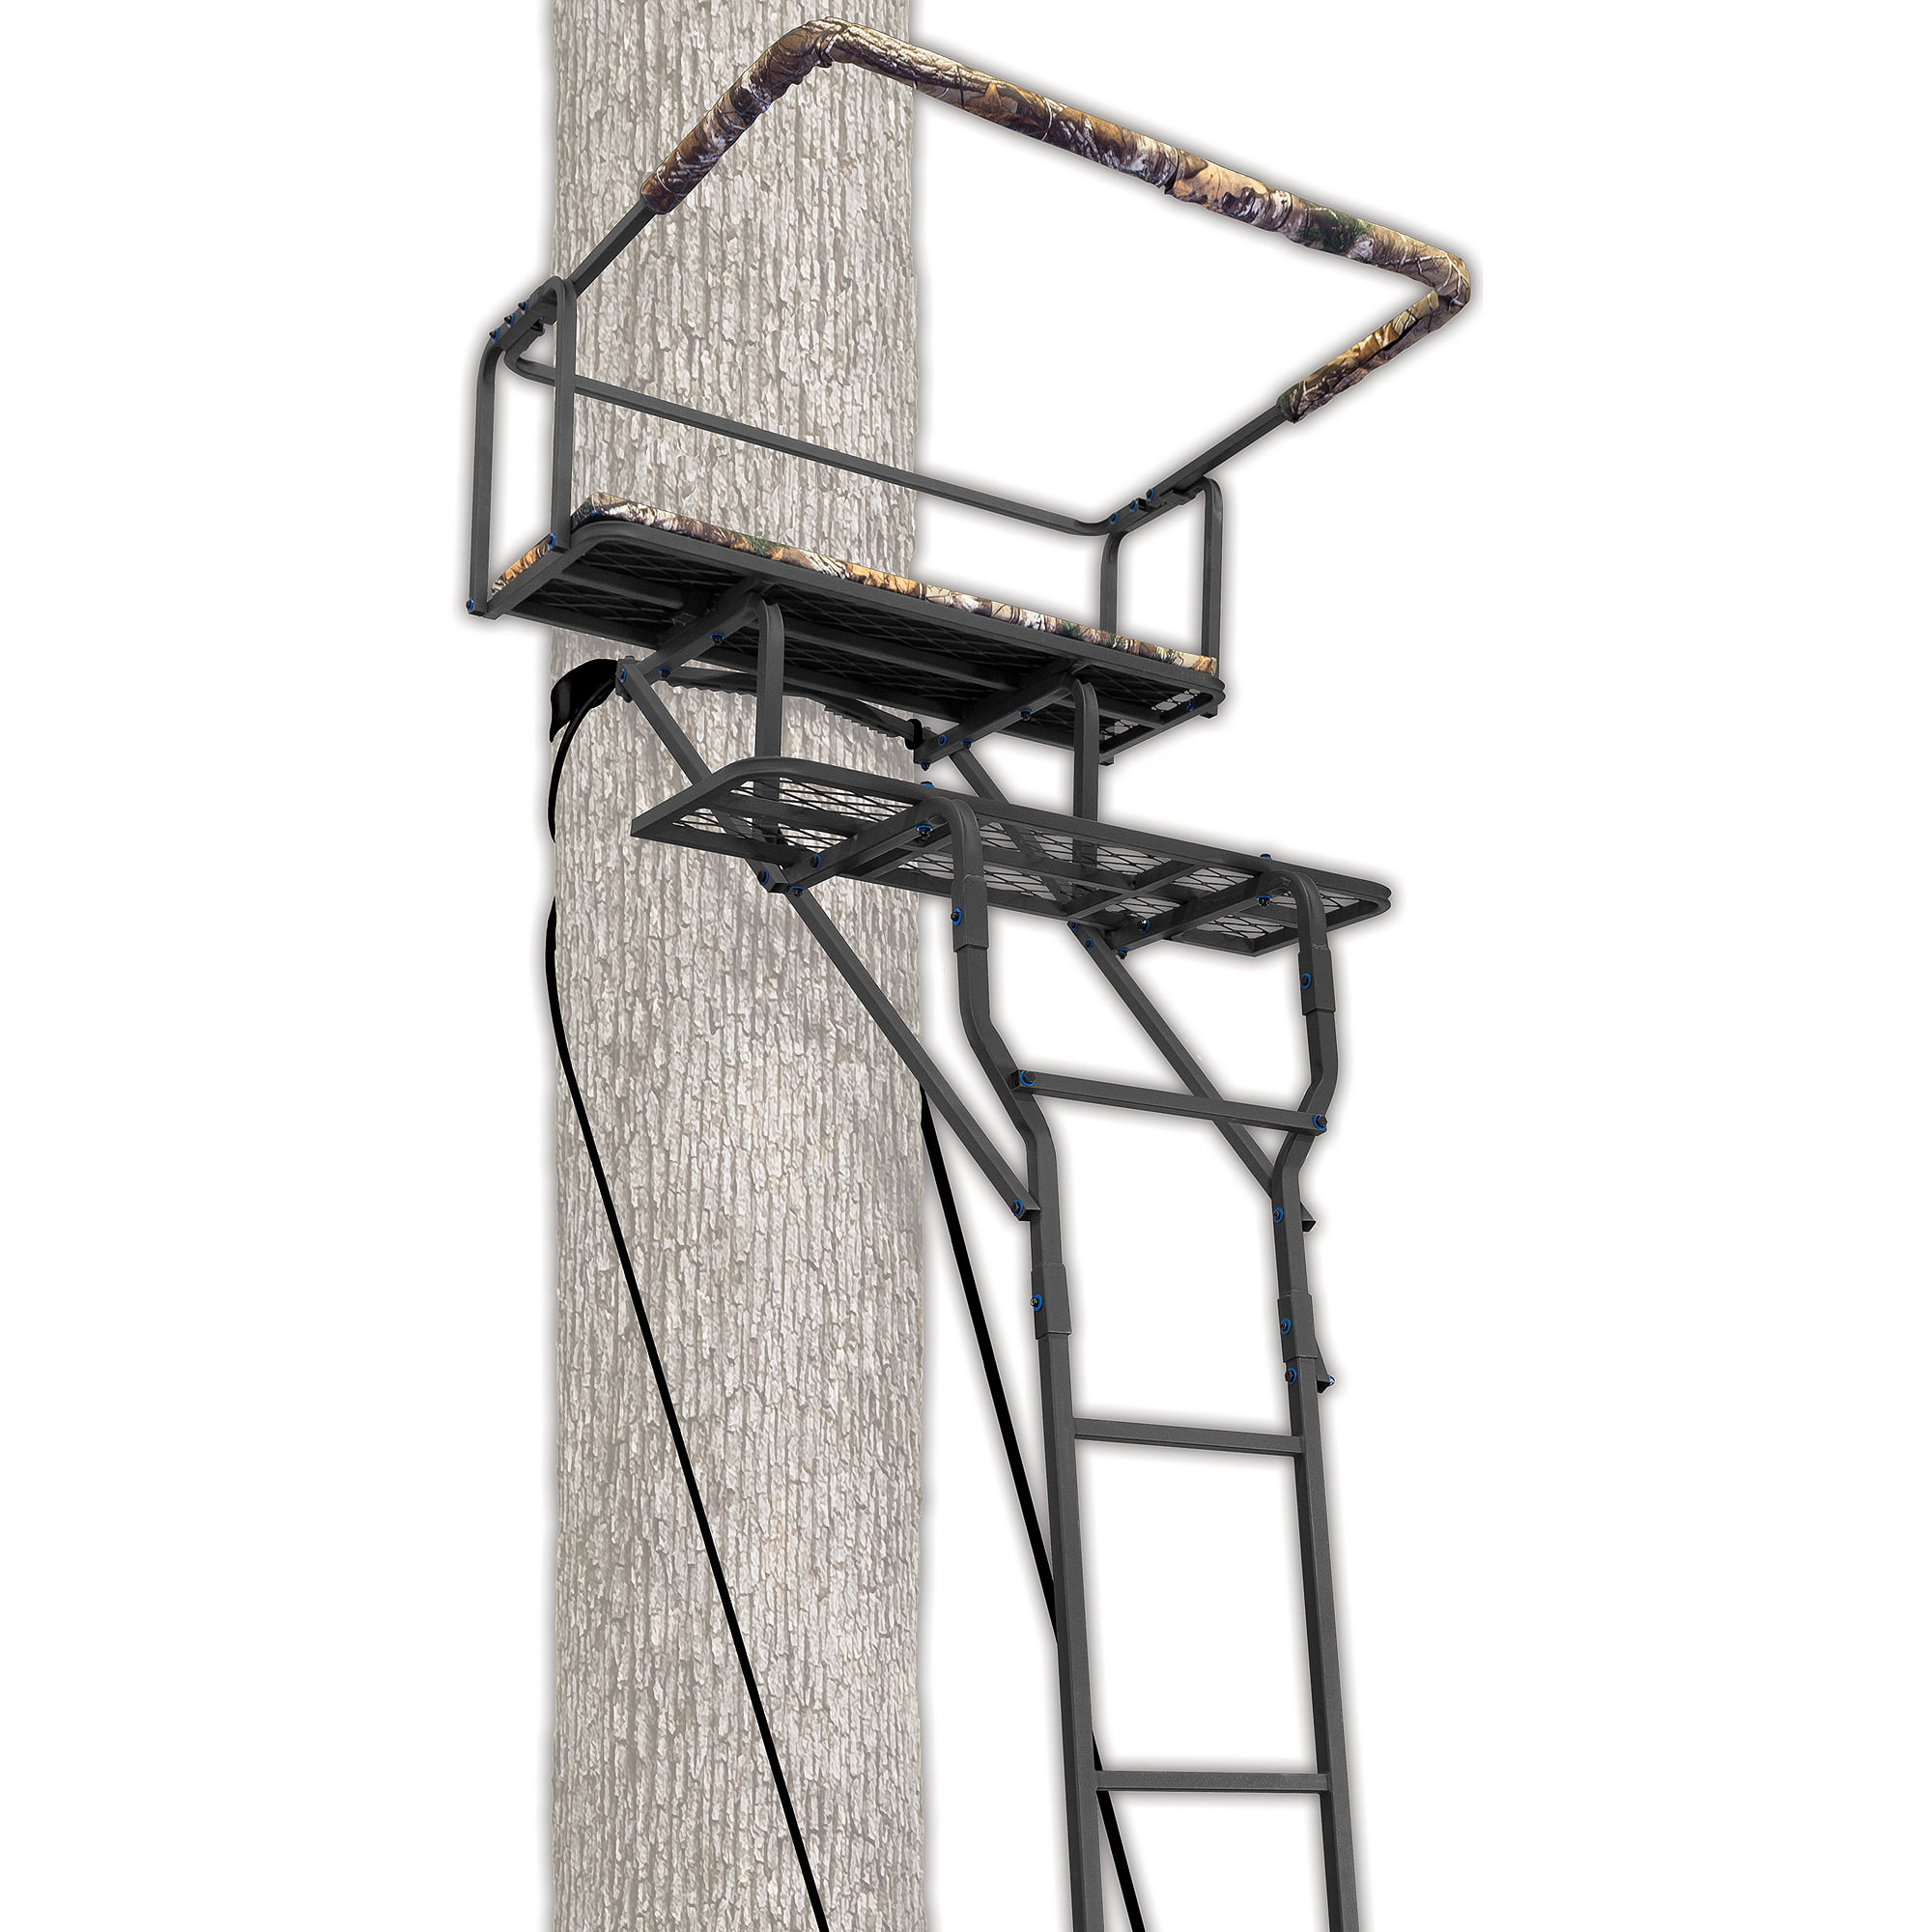 Ameristep 15' Two-Man Ladderstand w  RealTree AP Seat by Ameristep